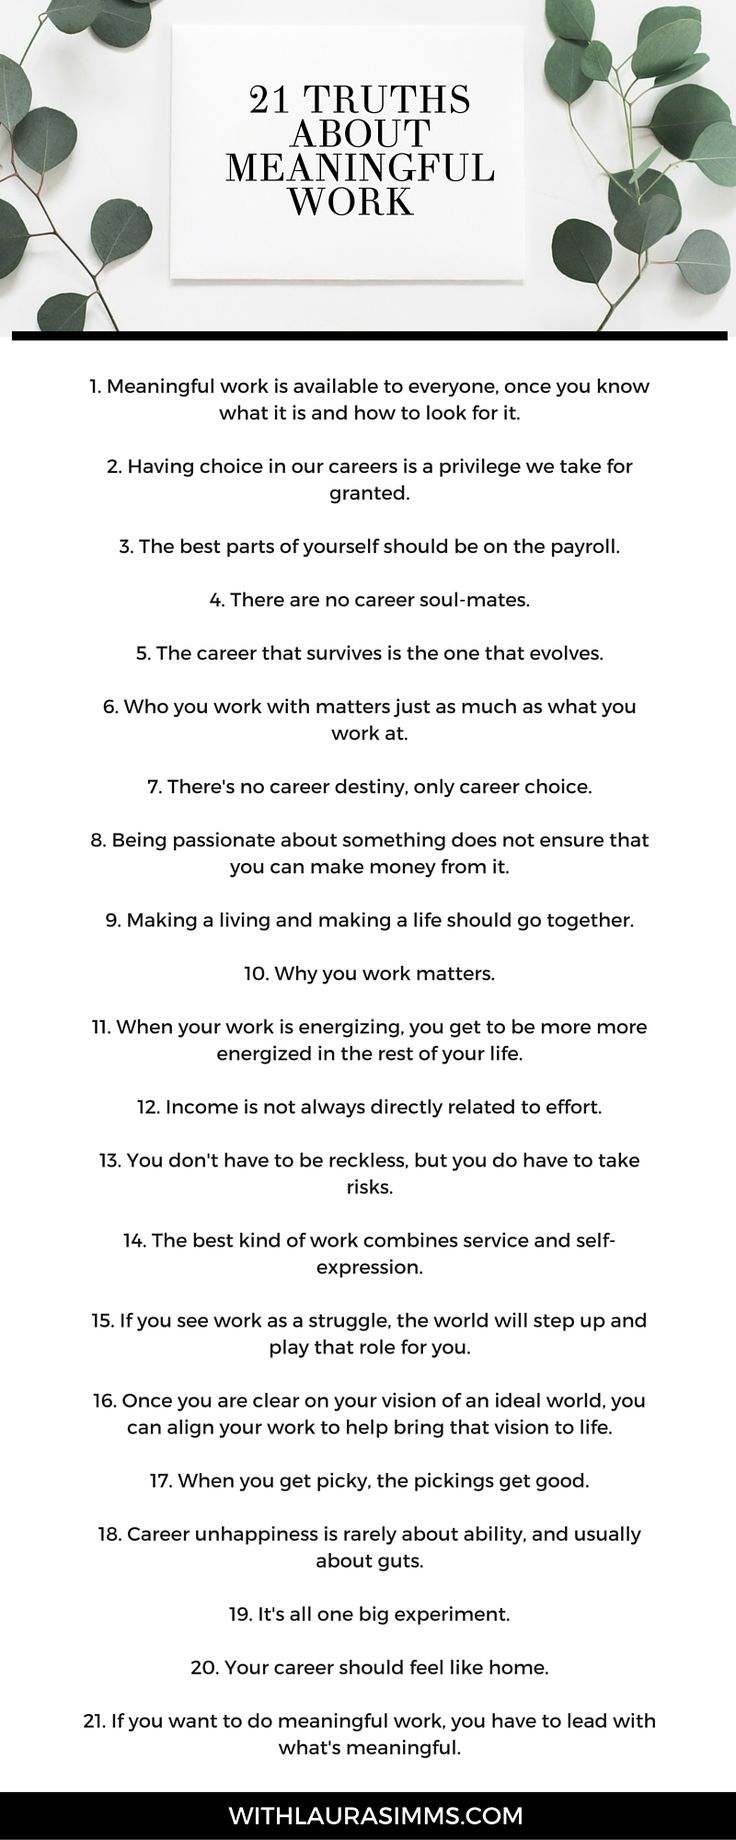 Whether you are struggling with a big career change, looking for a job with more meaning, or making it on your own as an entrepreneur, these 21 truths about meaningful work will serve you well.